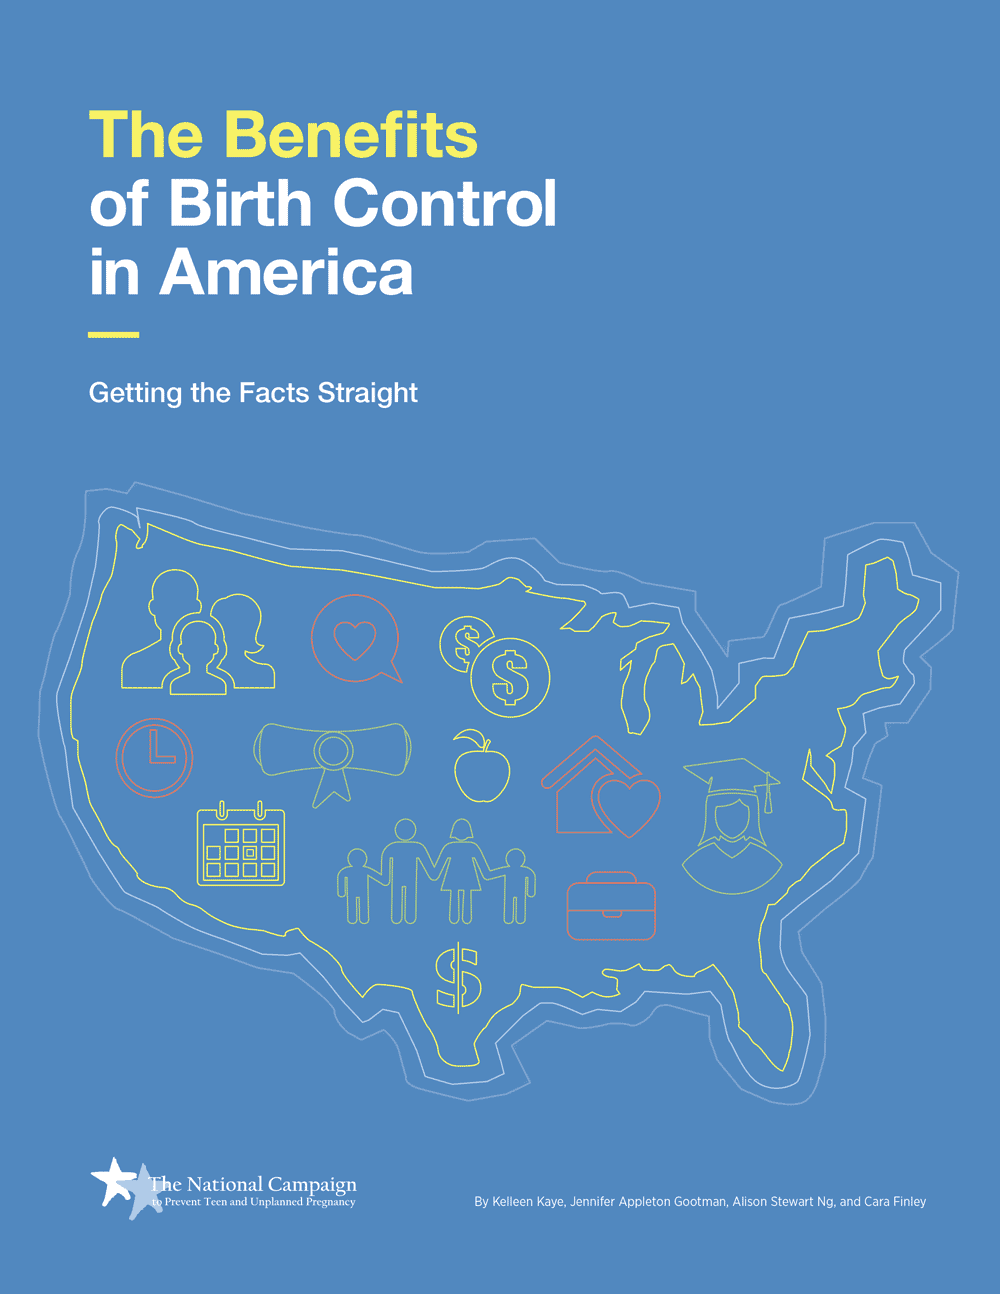 The Benefits of Birth Control in America: Getting the Facts Straight